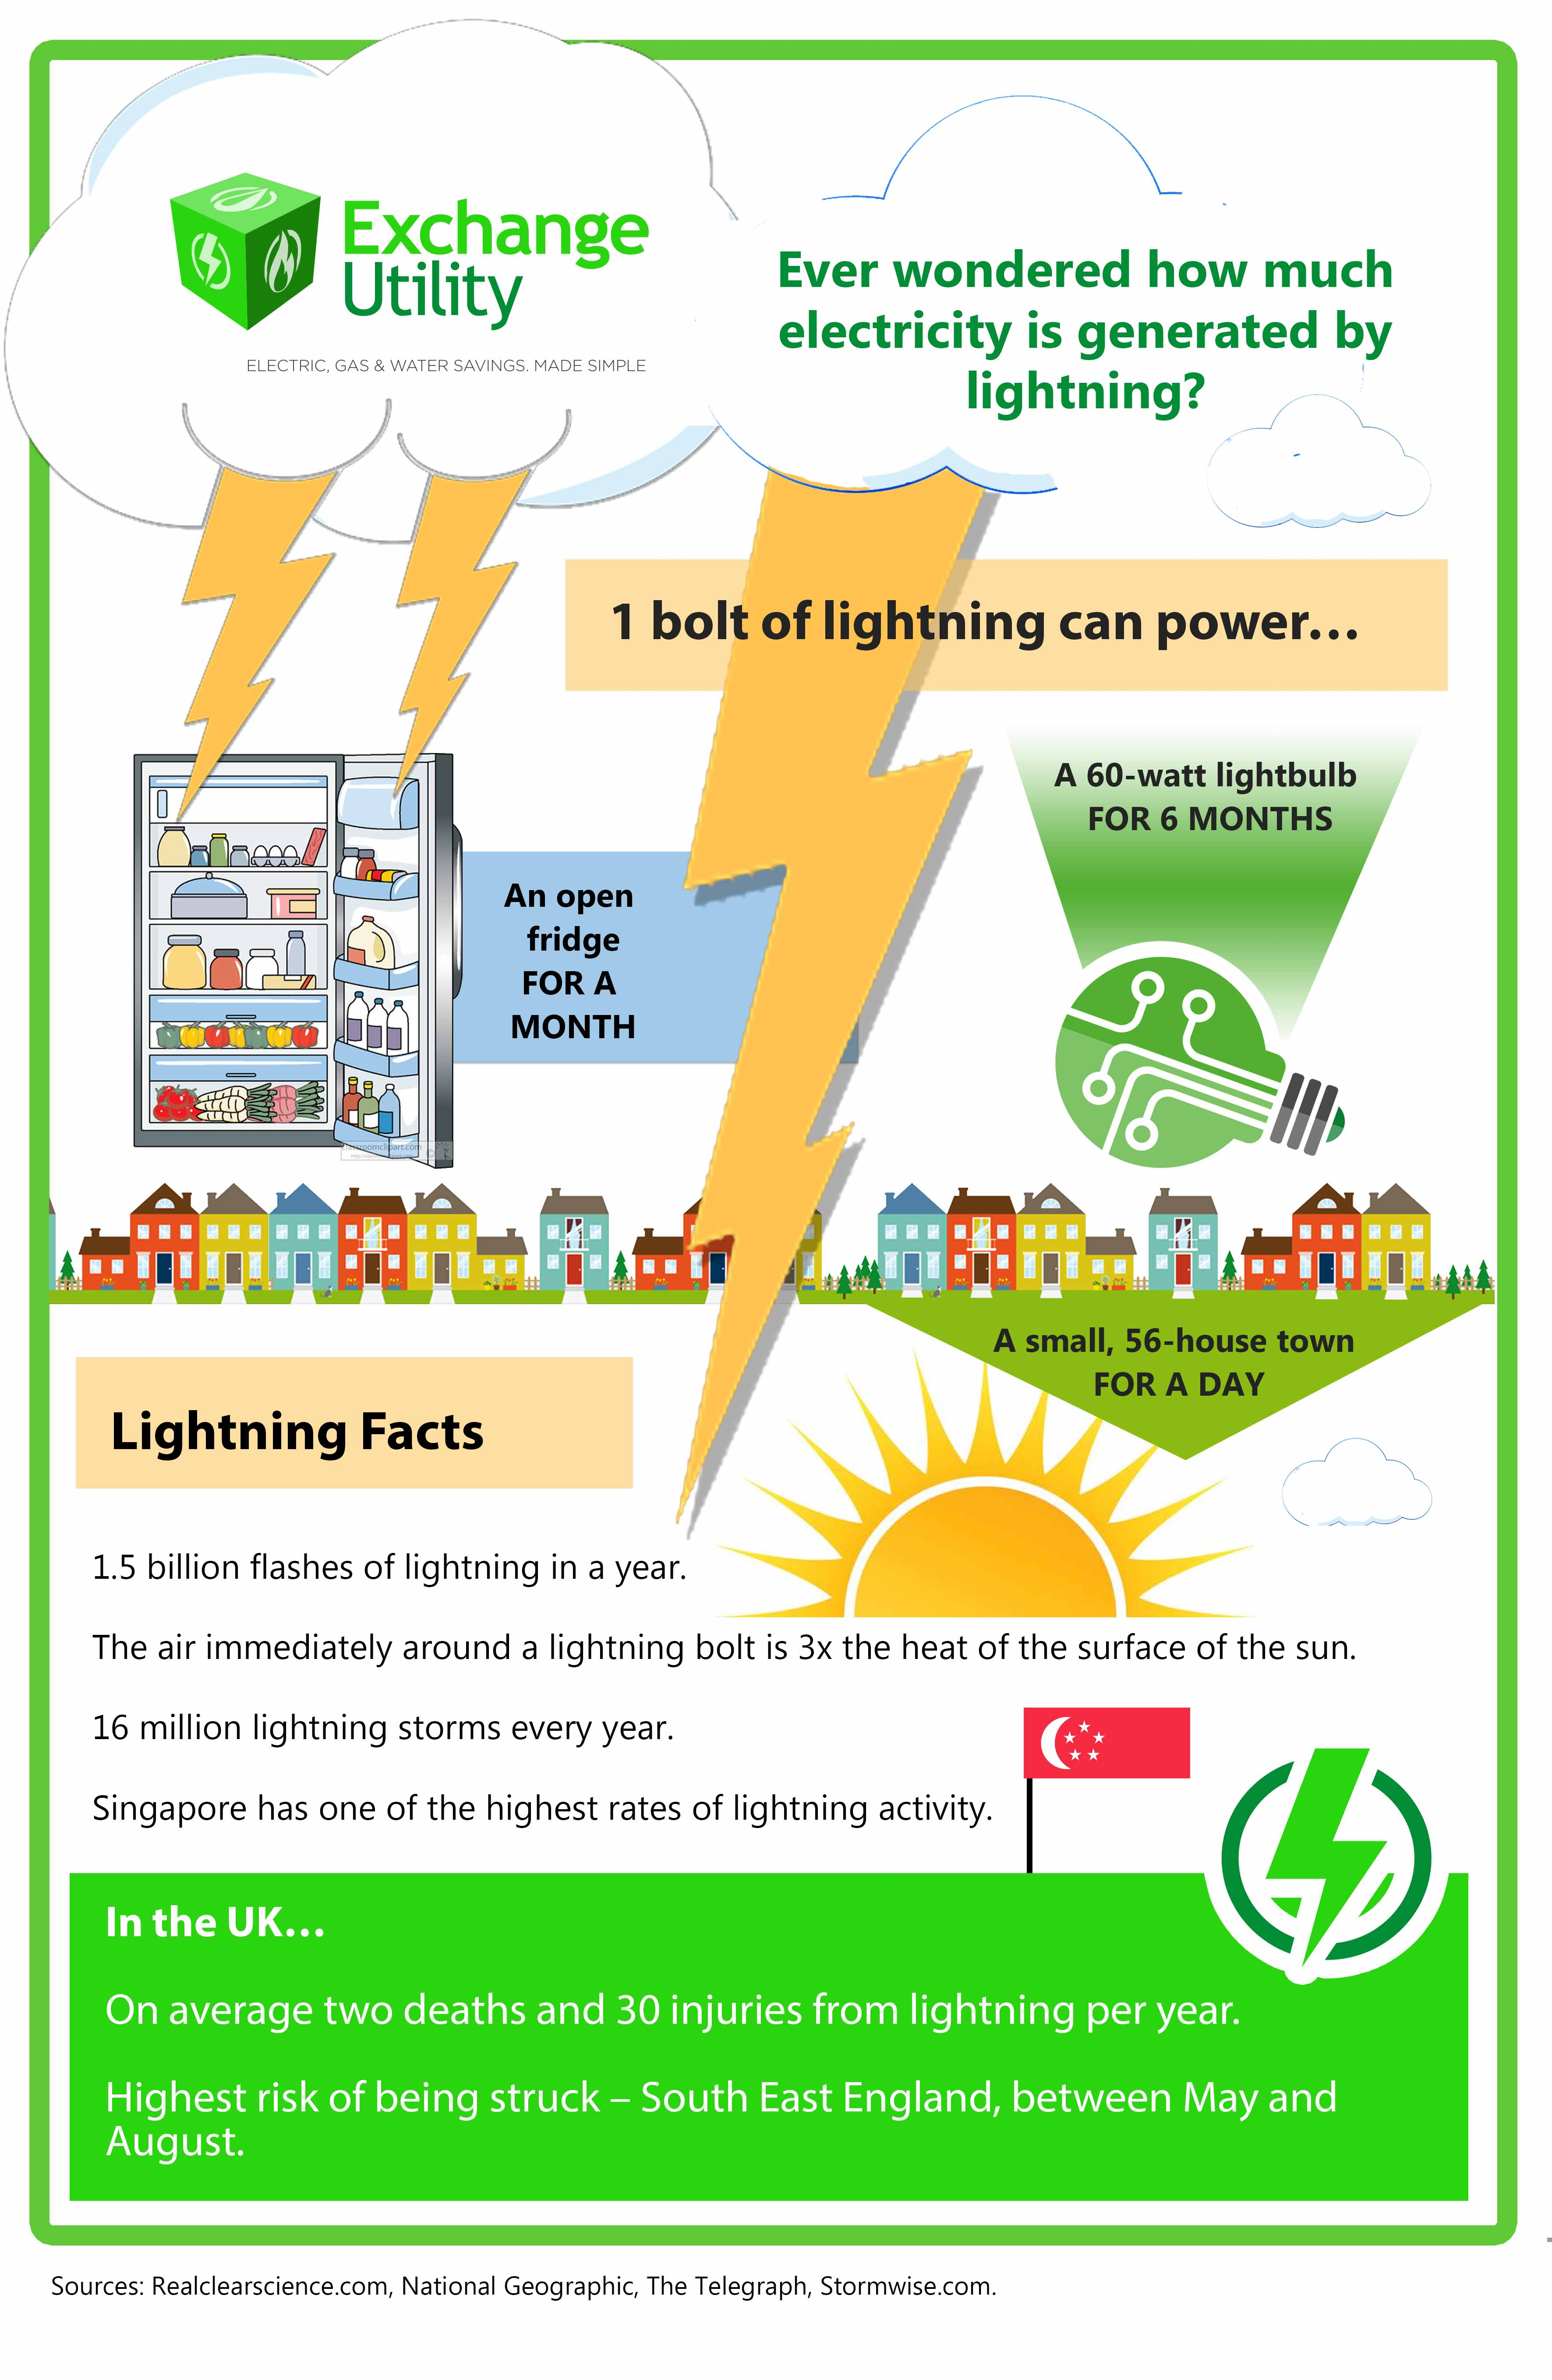 How much energy does lightning generate?